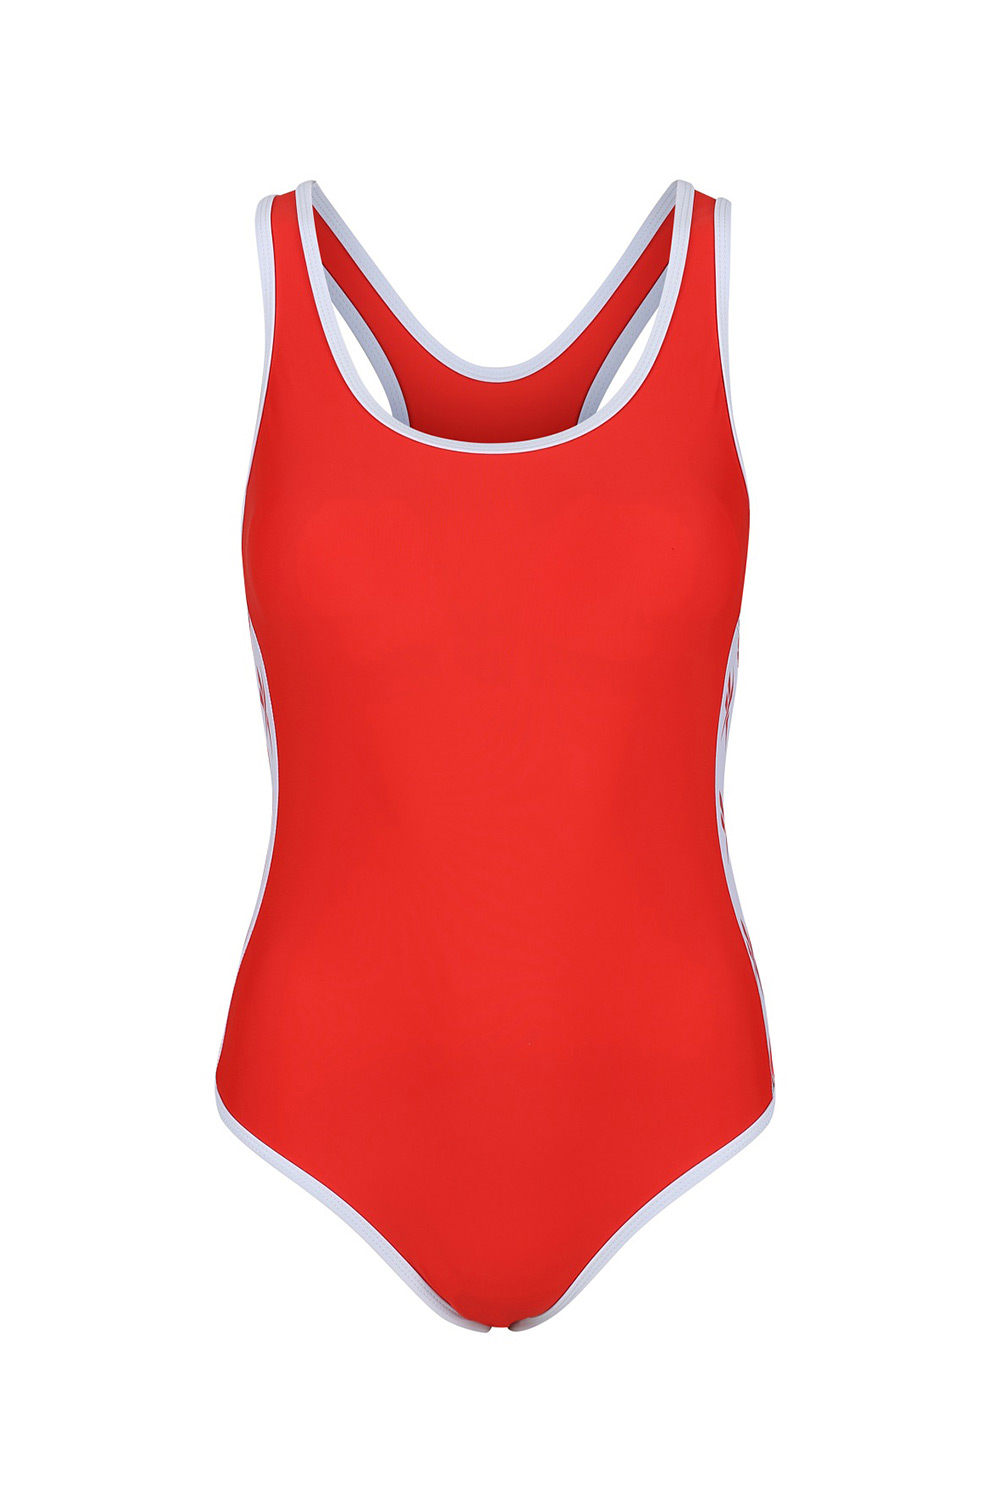 Costum de baie intreg Reebok Alyssa Red